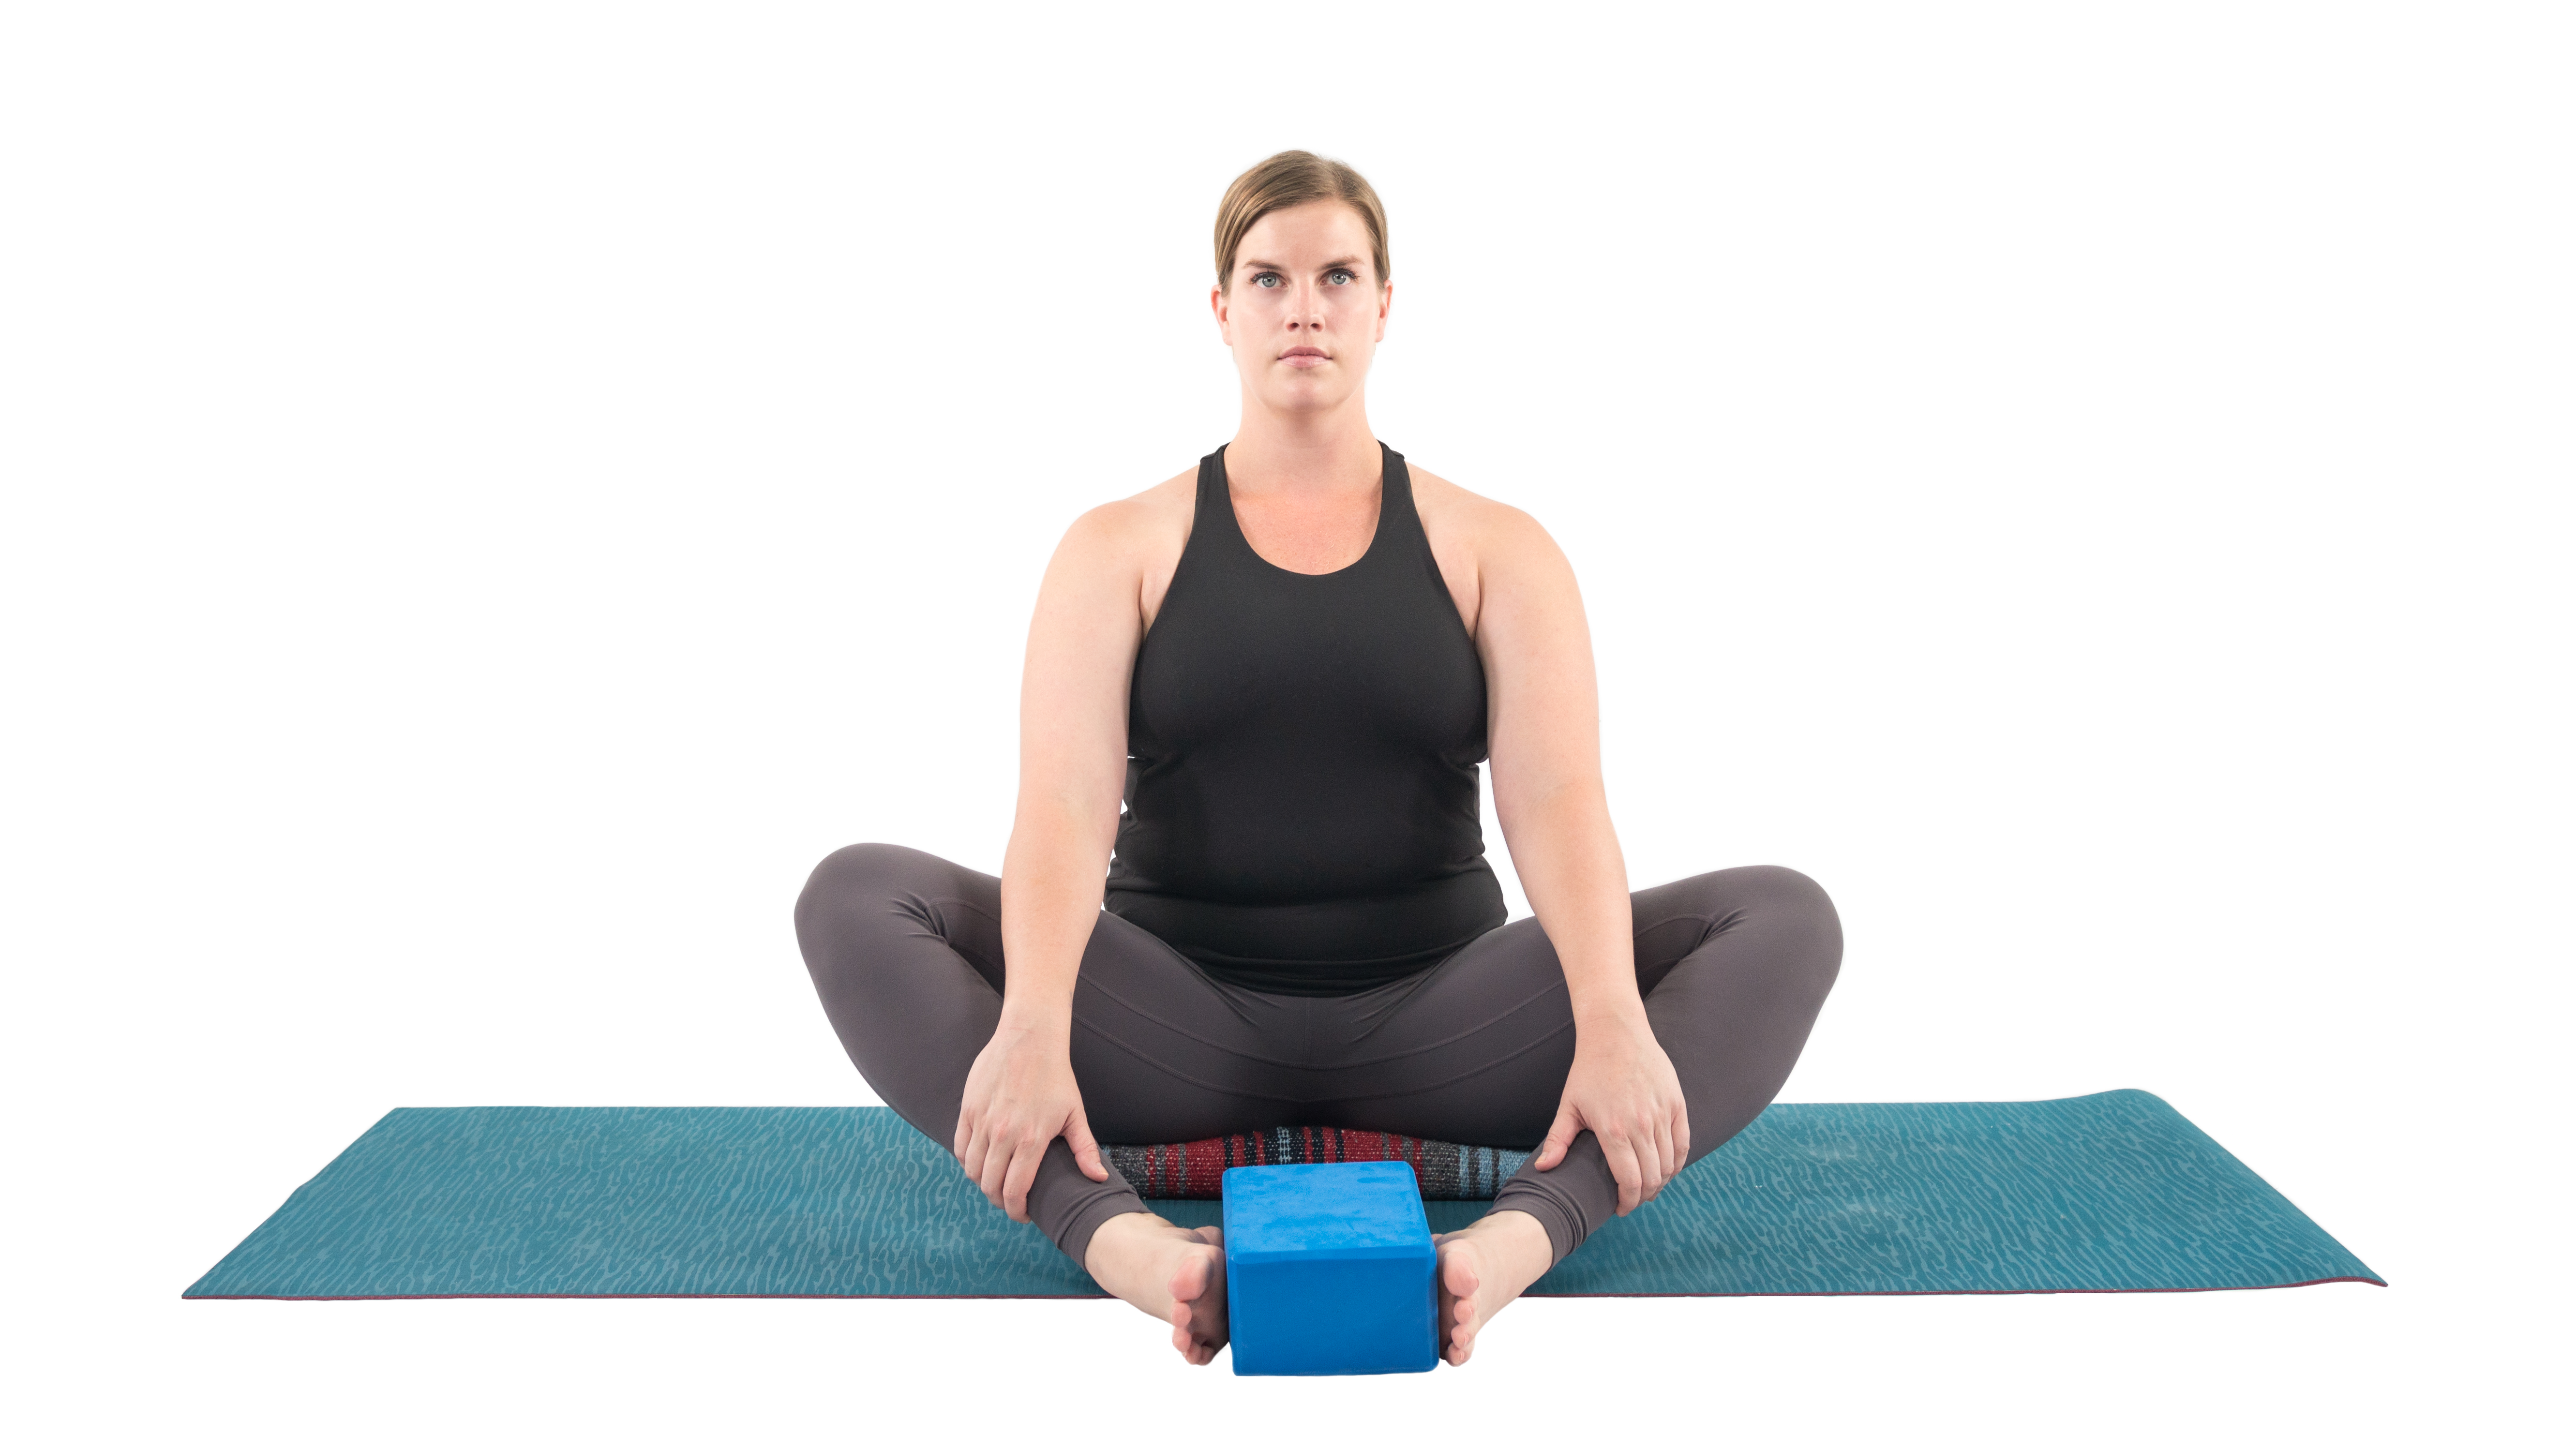 Woman in Bound Angle Pose (Baddha Konasana), a yoga pose to prepar the muscles of the hips for the proper practice of the Warrior 2 series.